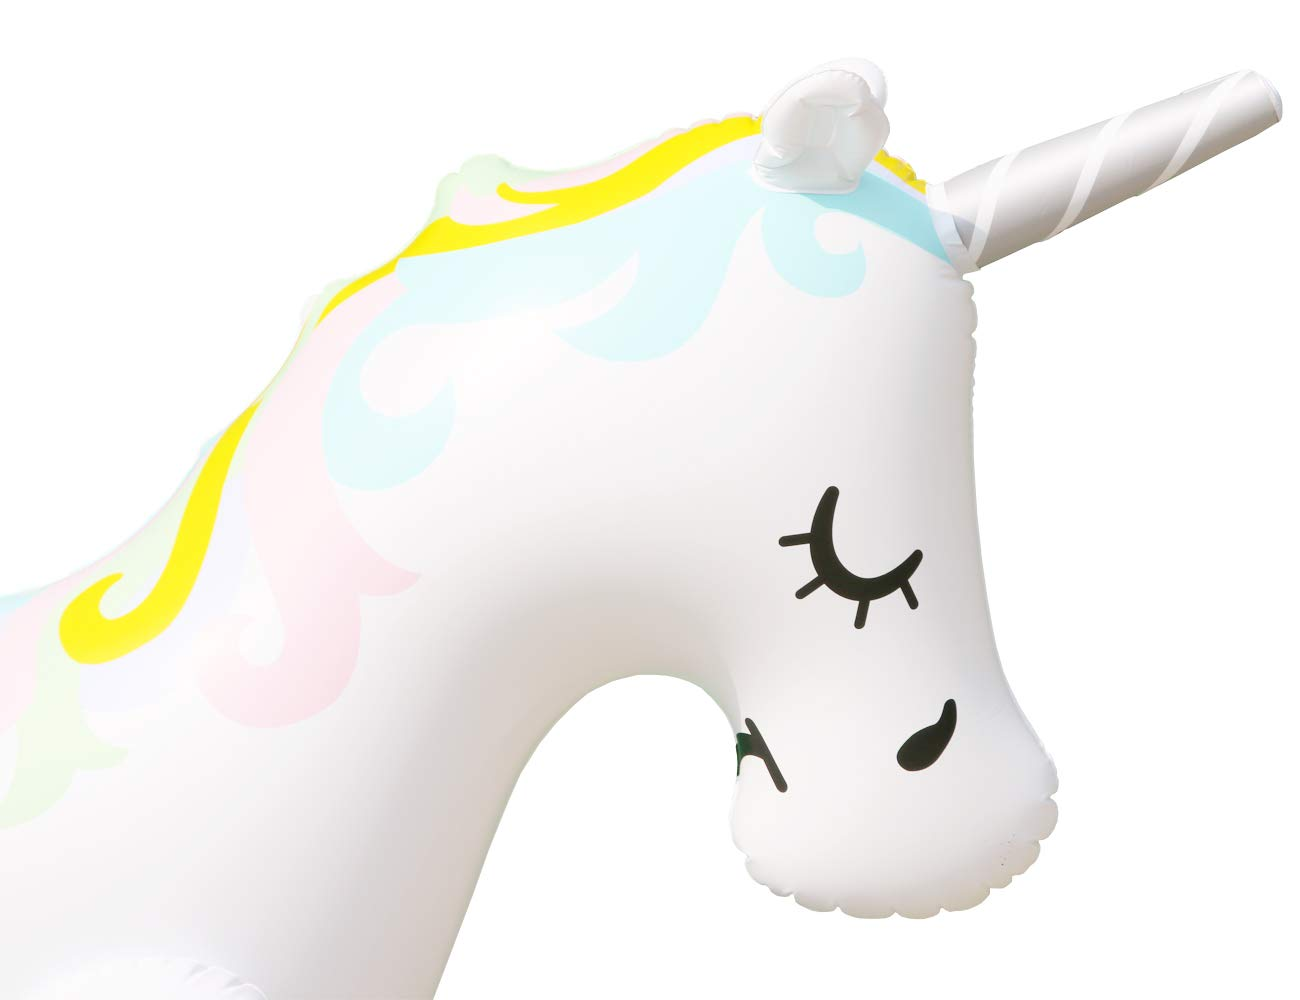 LANGXUN Ginormous Inflatable Unicorn Yard Sprinkler Toy for Kids, Perfect for Unicorn Party Supplies & Outdoor Summer Sprays Water Toys for Toddlers 6